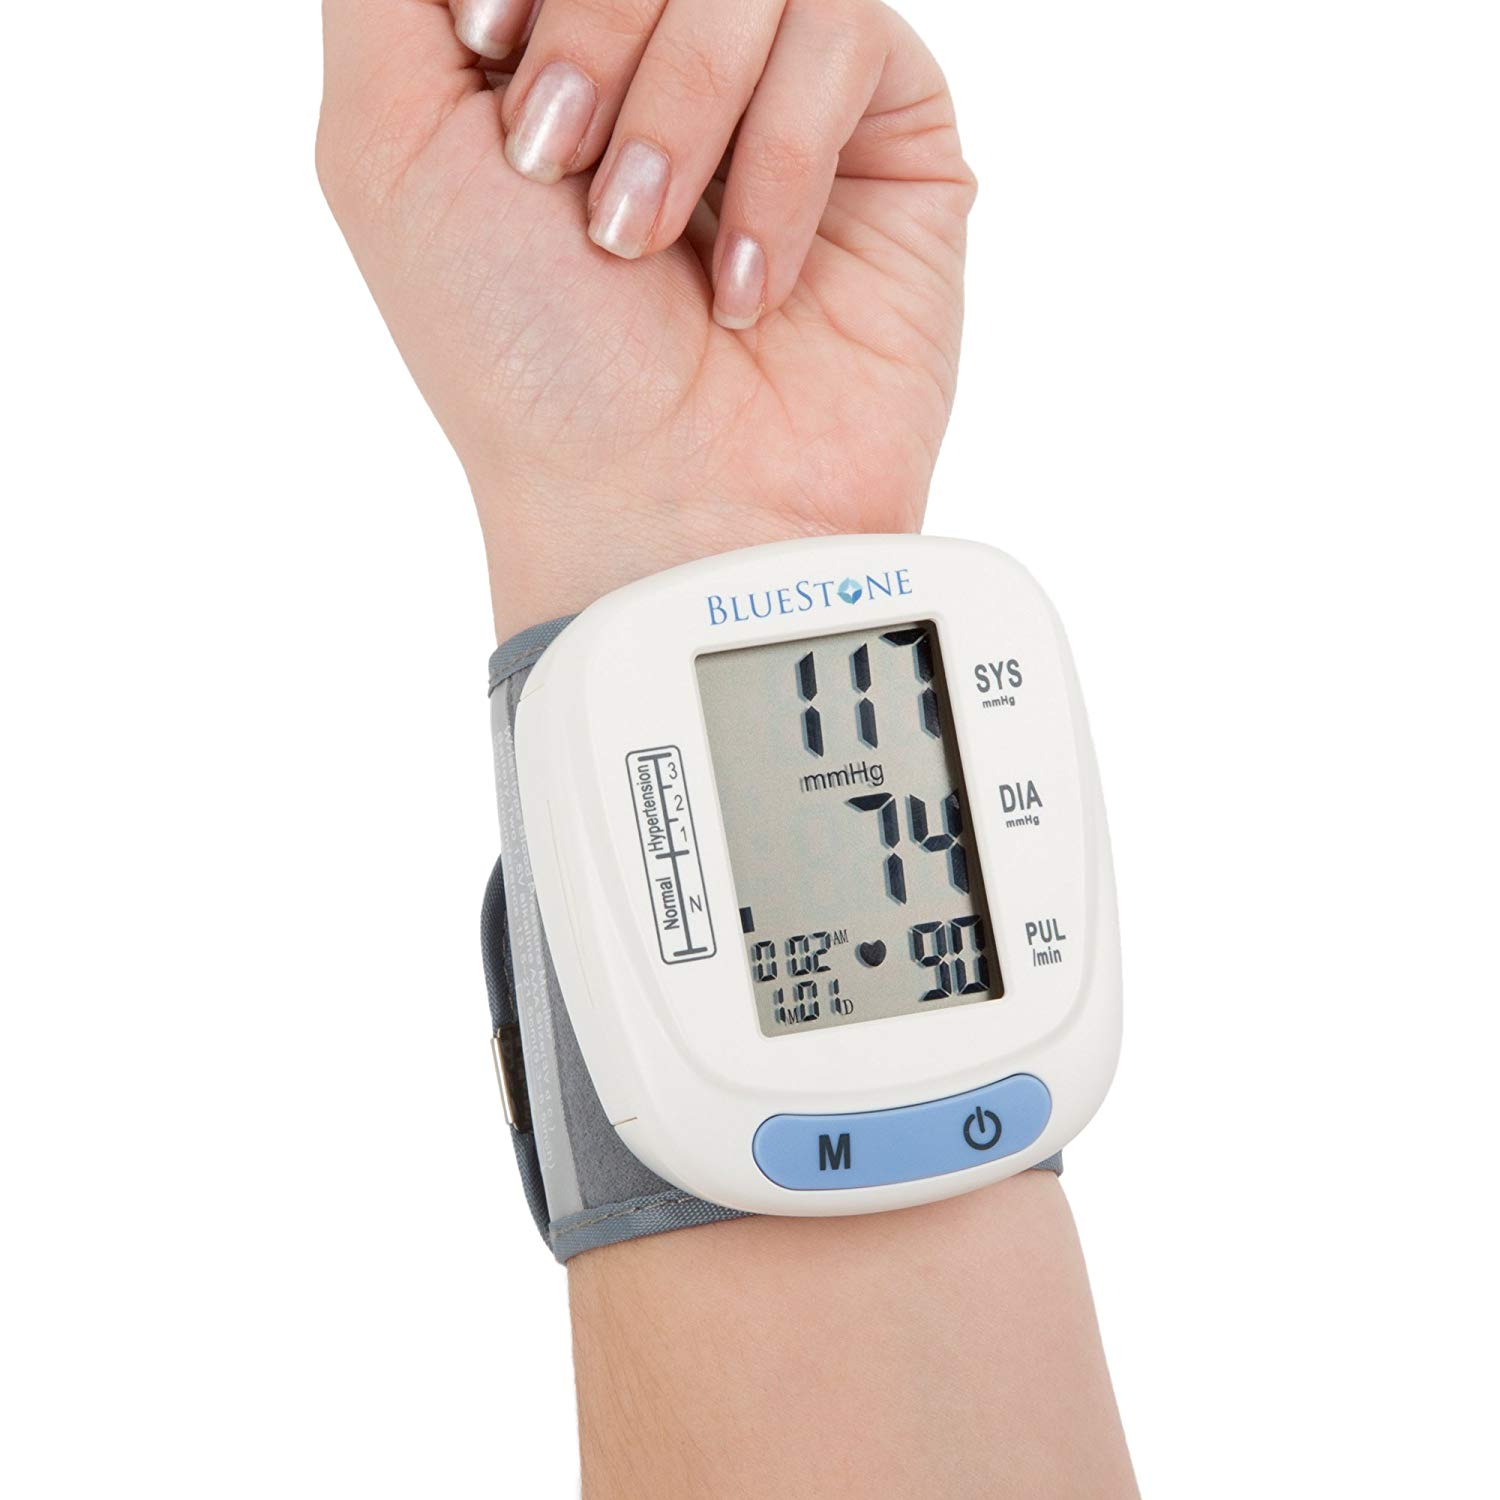 Review of Bluestone Automatic Wrist Blood Pressure Monitor with Digital LCD Display Screen